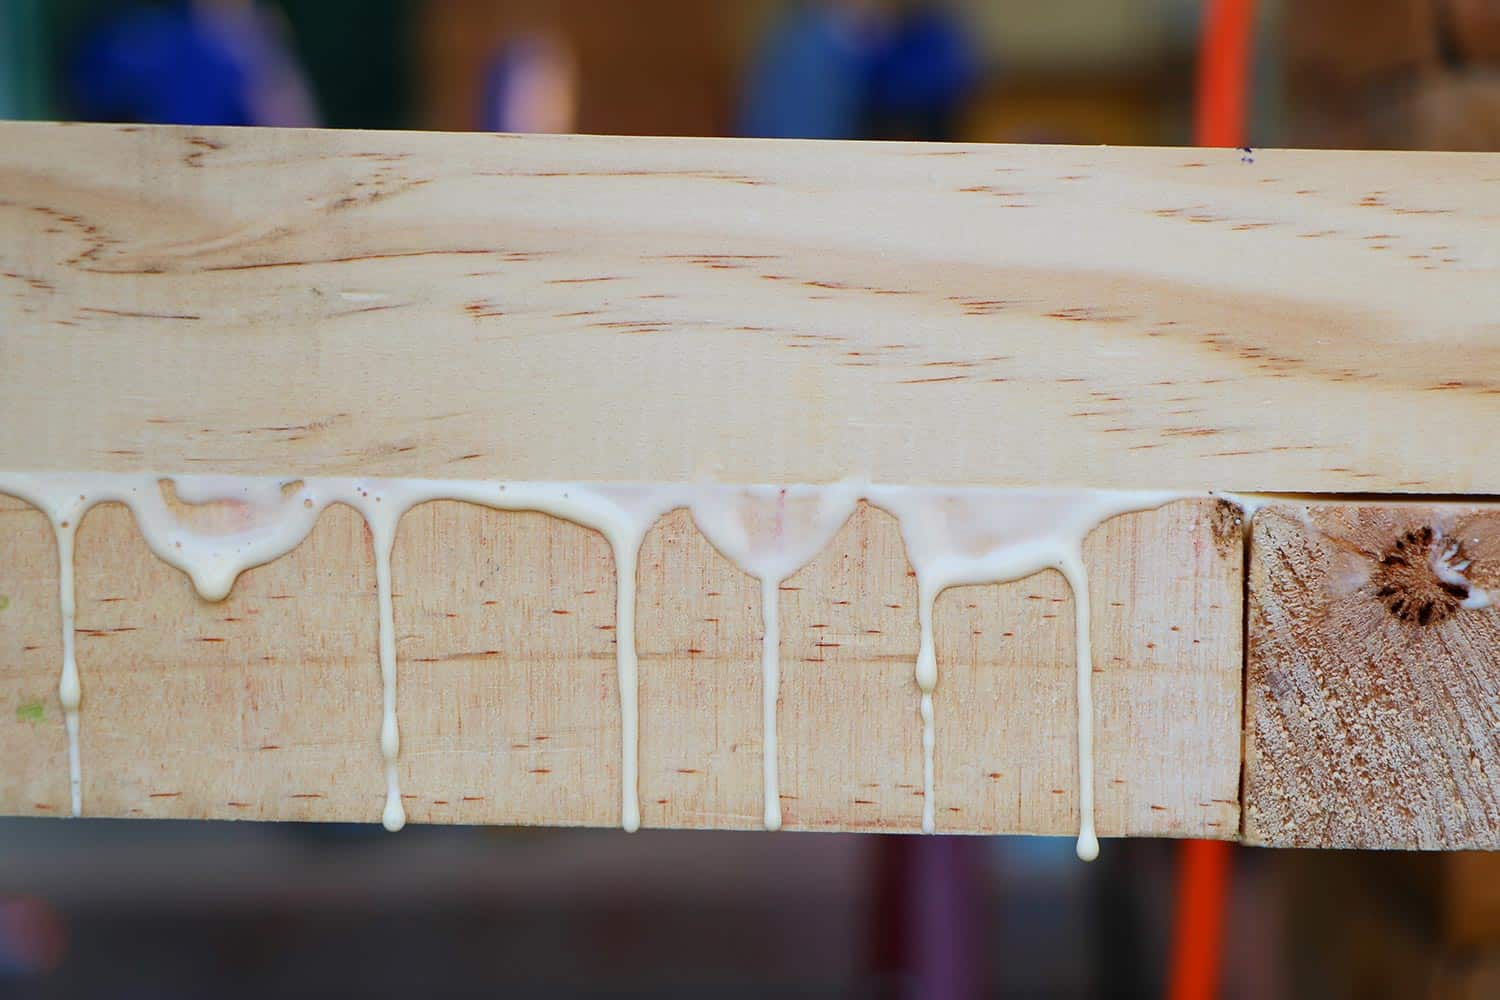 Drops of glue while assembling a new wooden furniture with gluing